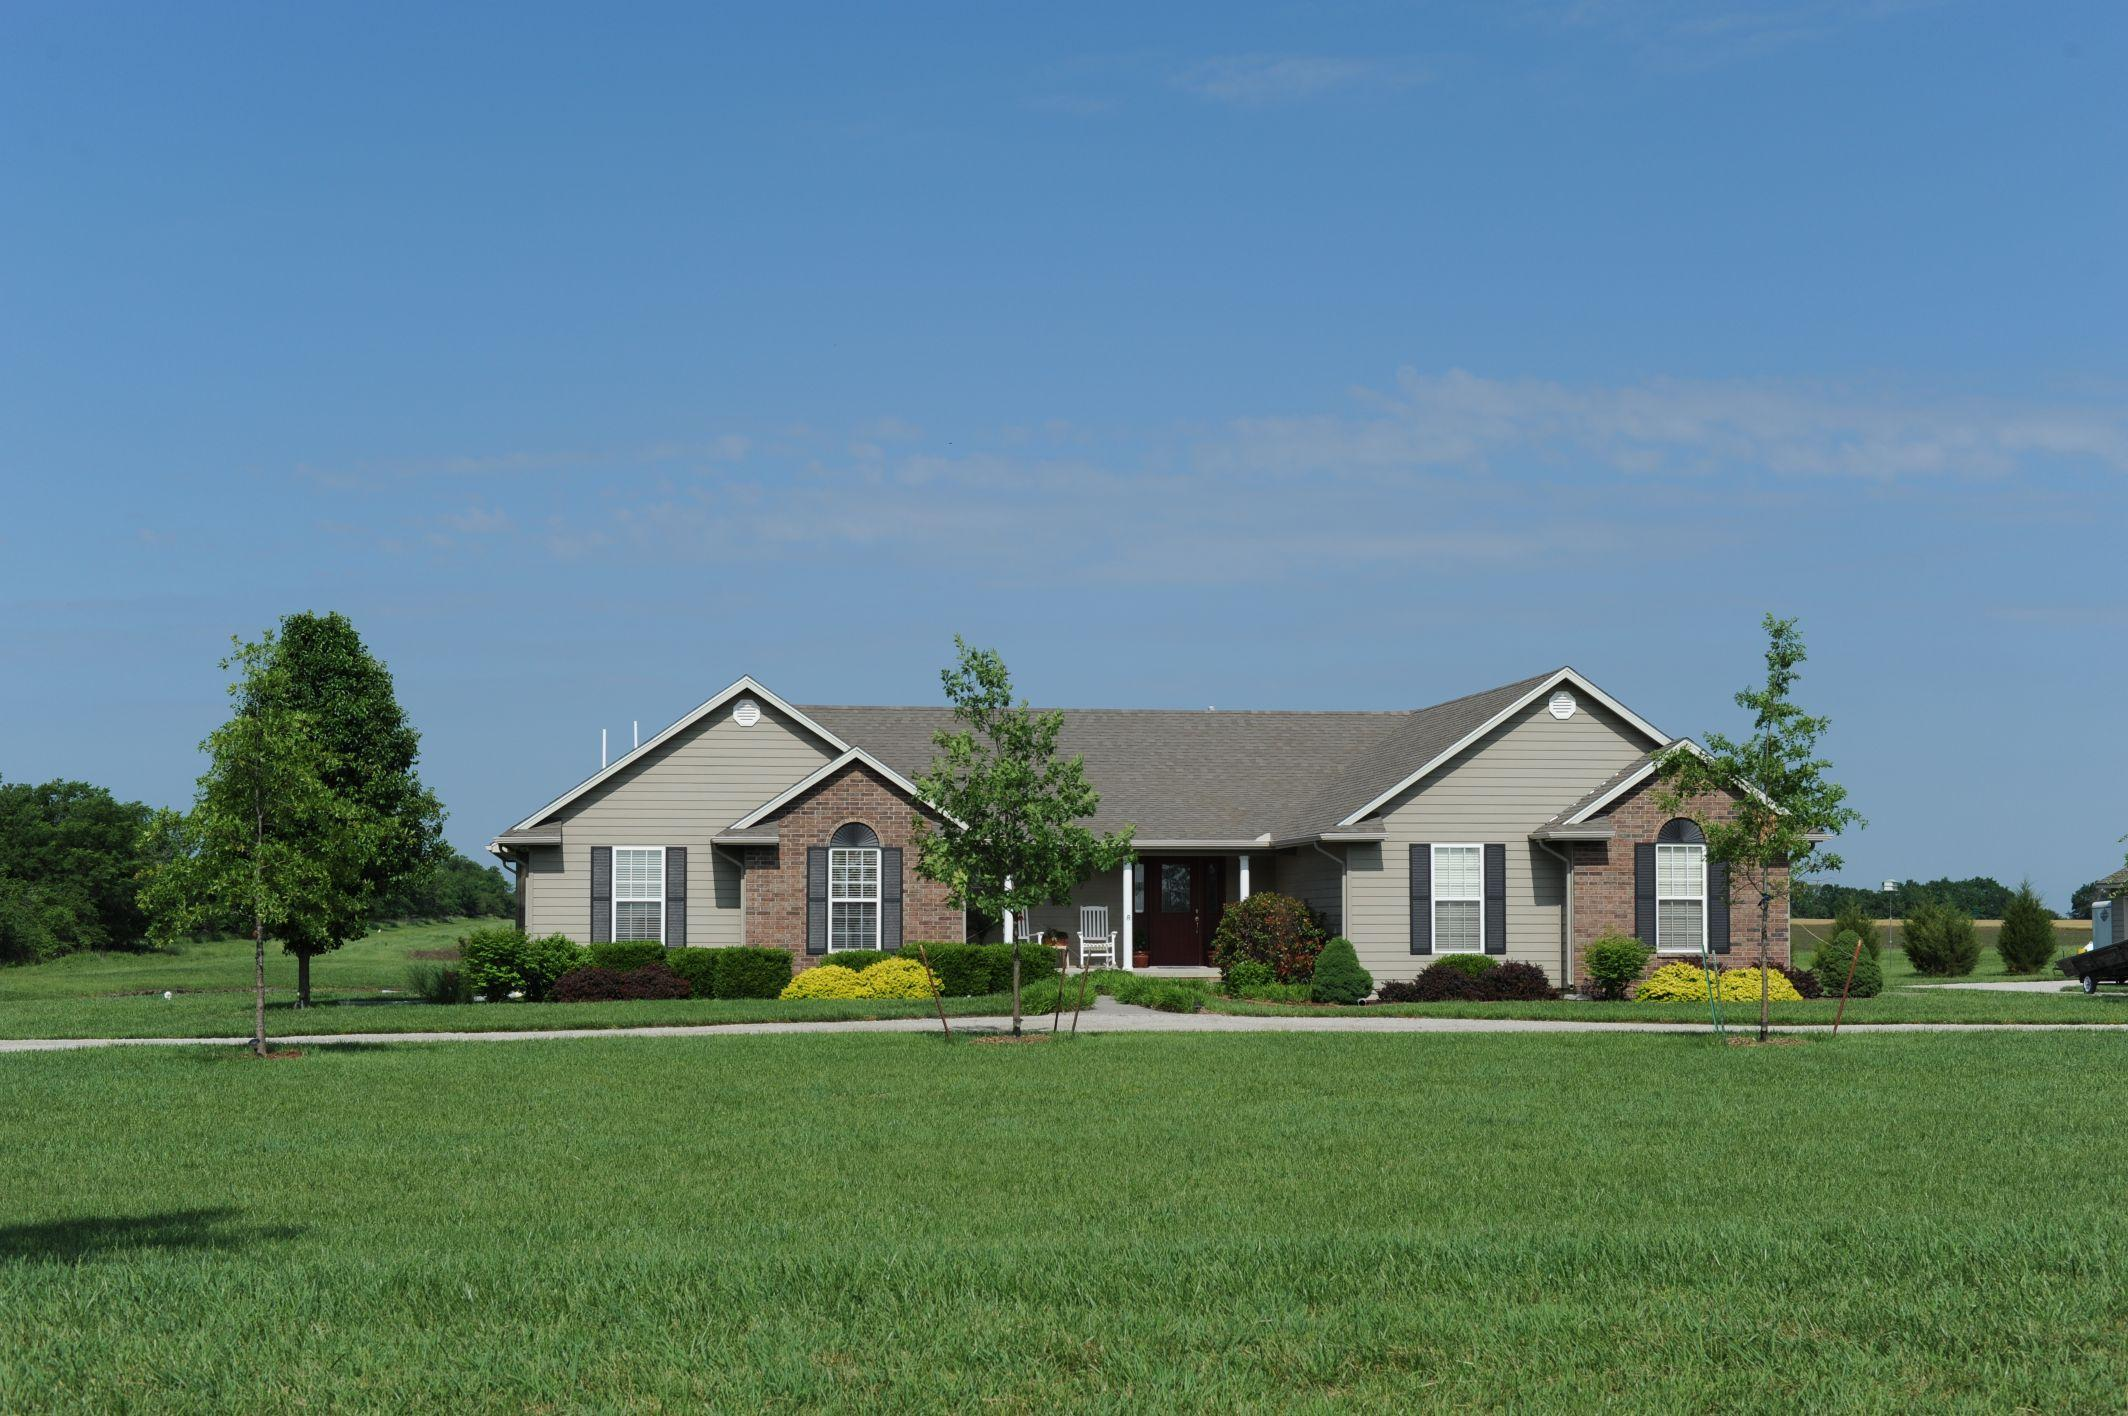 Advanced systems homes in chanute ks 66720 for Advanced home